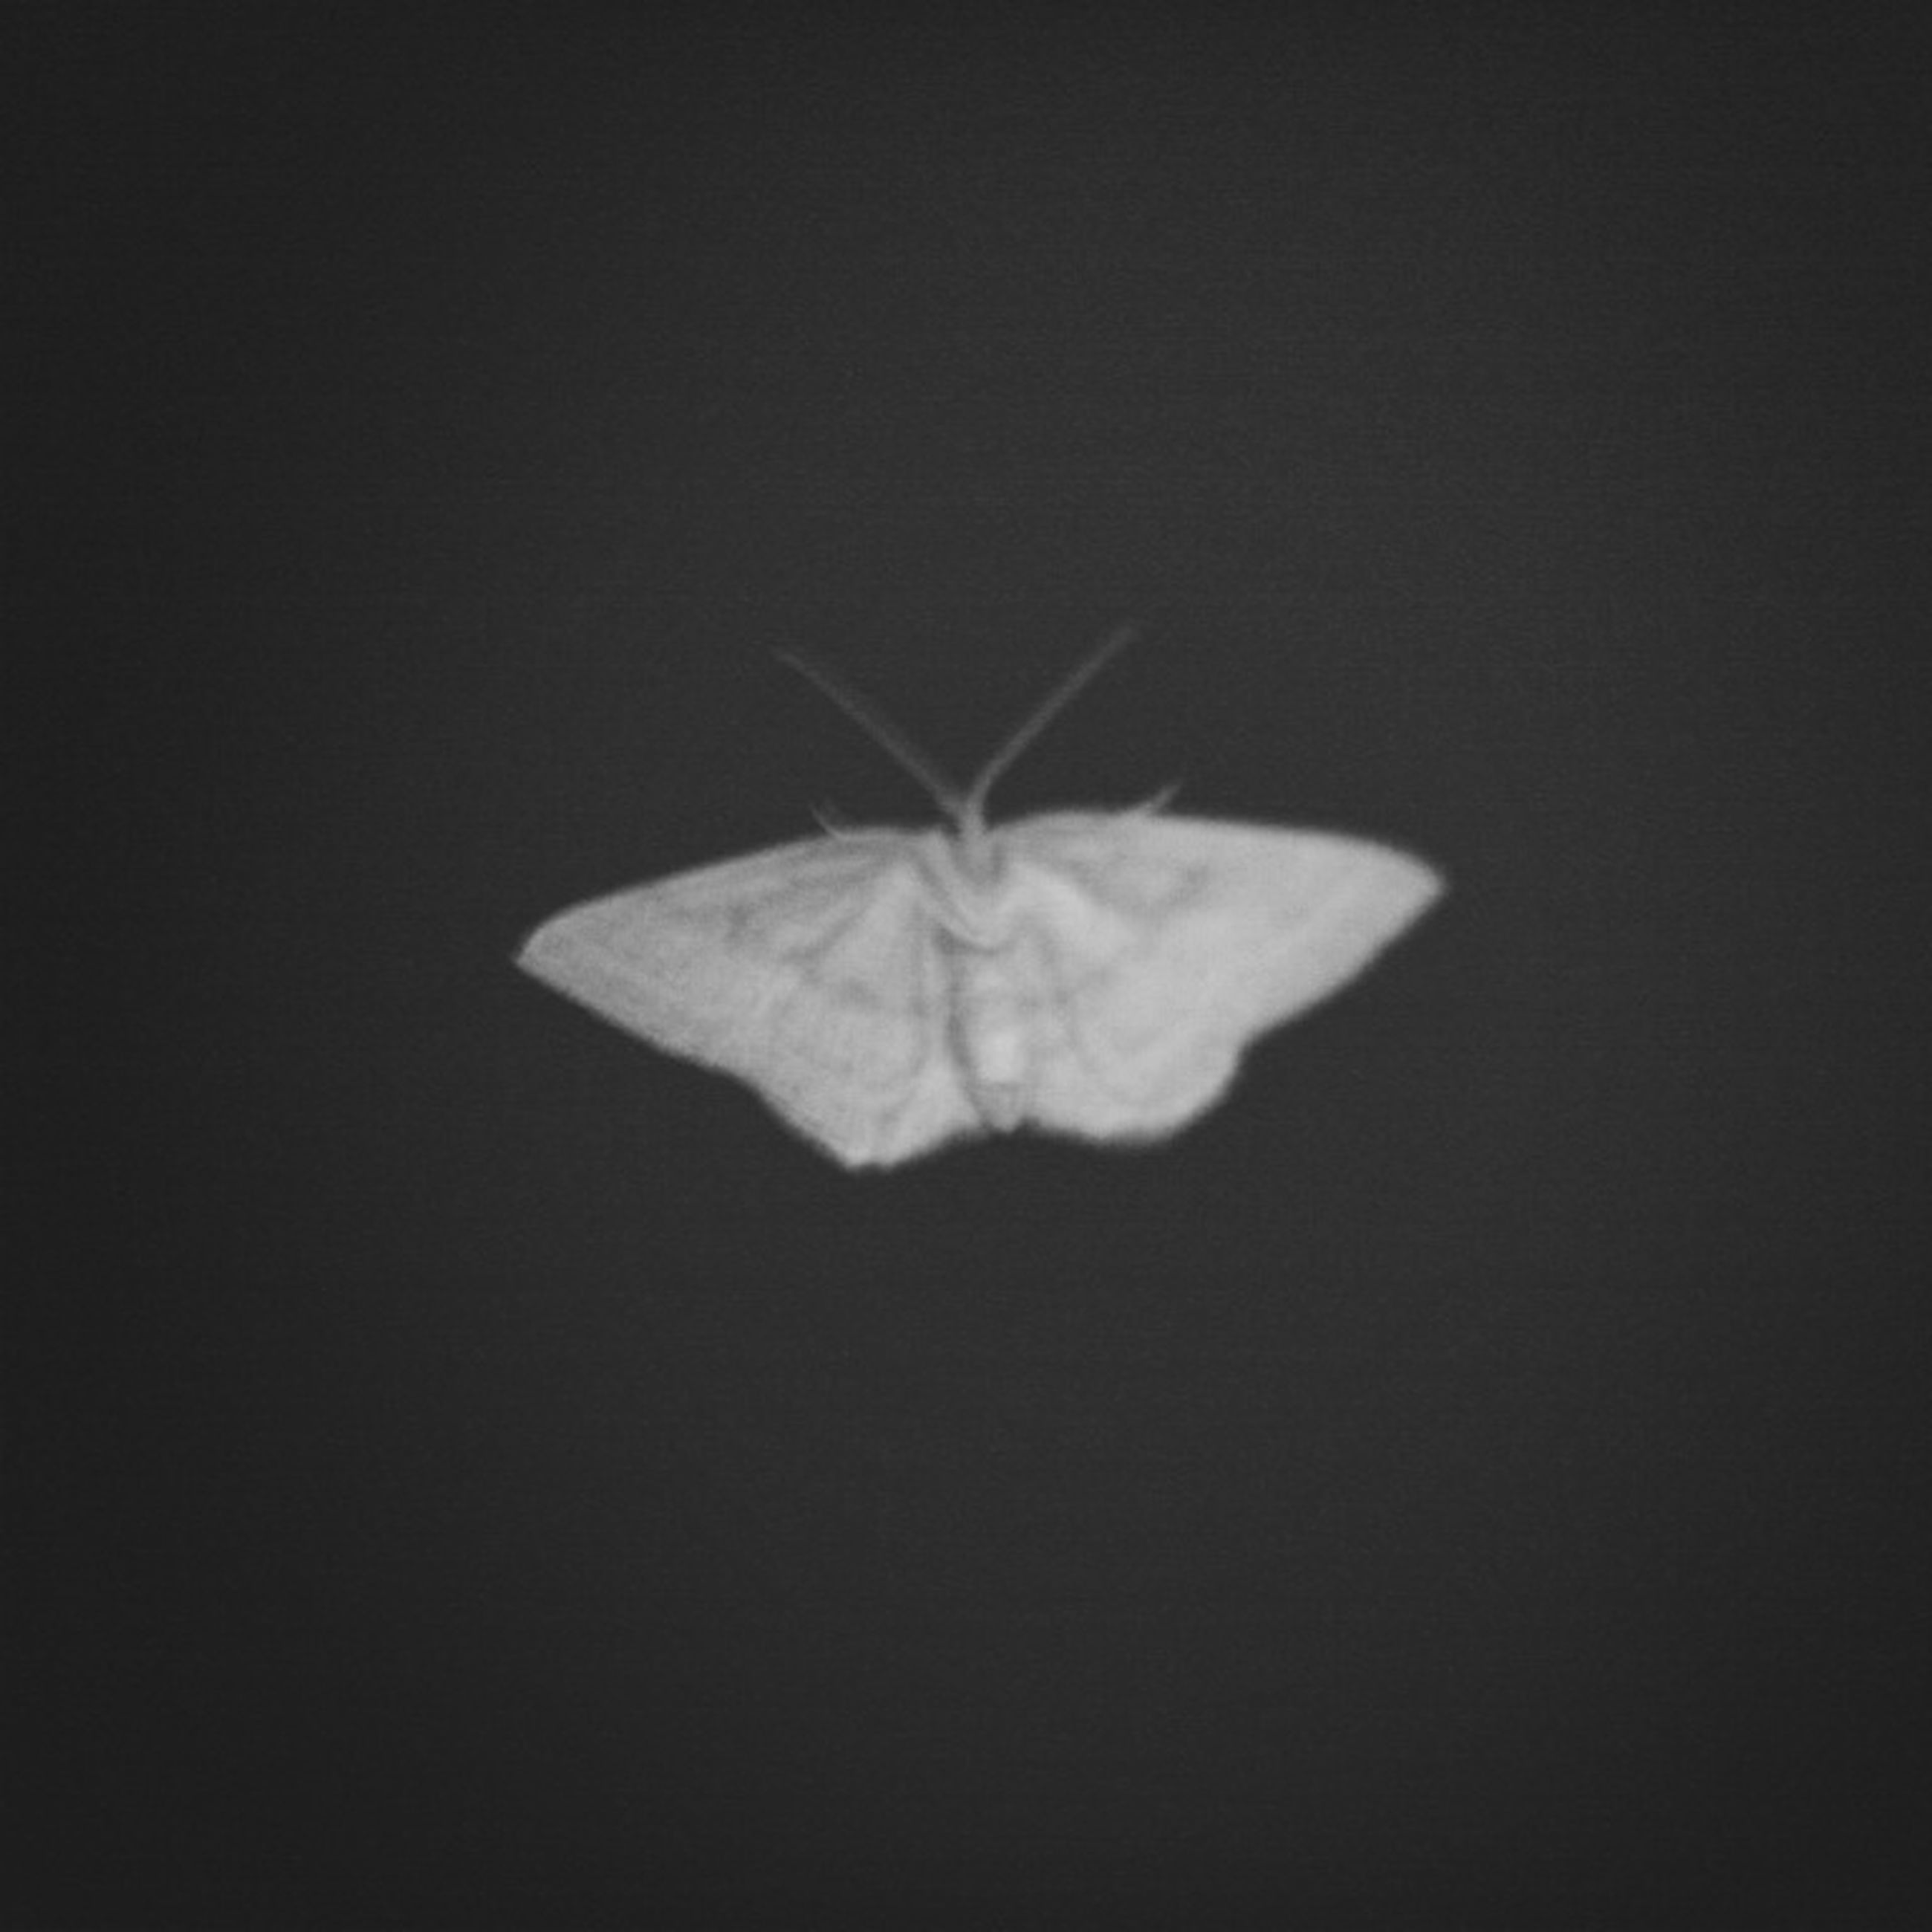 one animal, insect, animal themes, animals in the wild, wildlife, studio shot, copy space, close-up, black background, nature, full length, dragonfly, animal wing, no people, animal antenna, vignette, butterfly, night, cut out, fragility